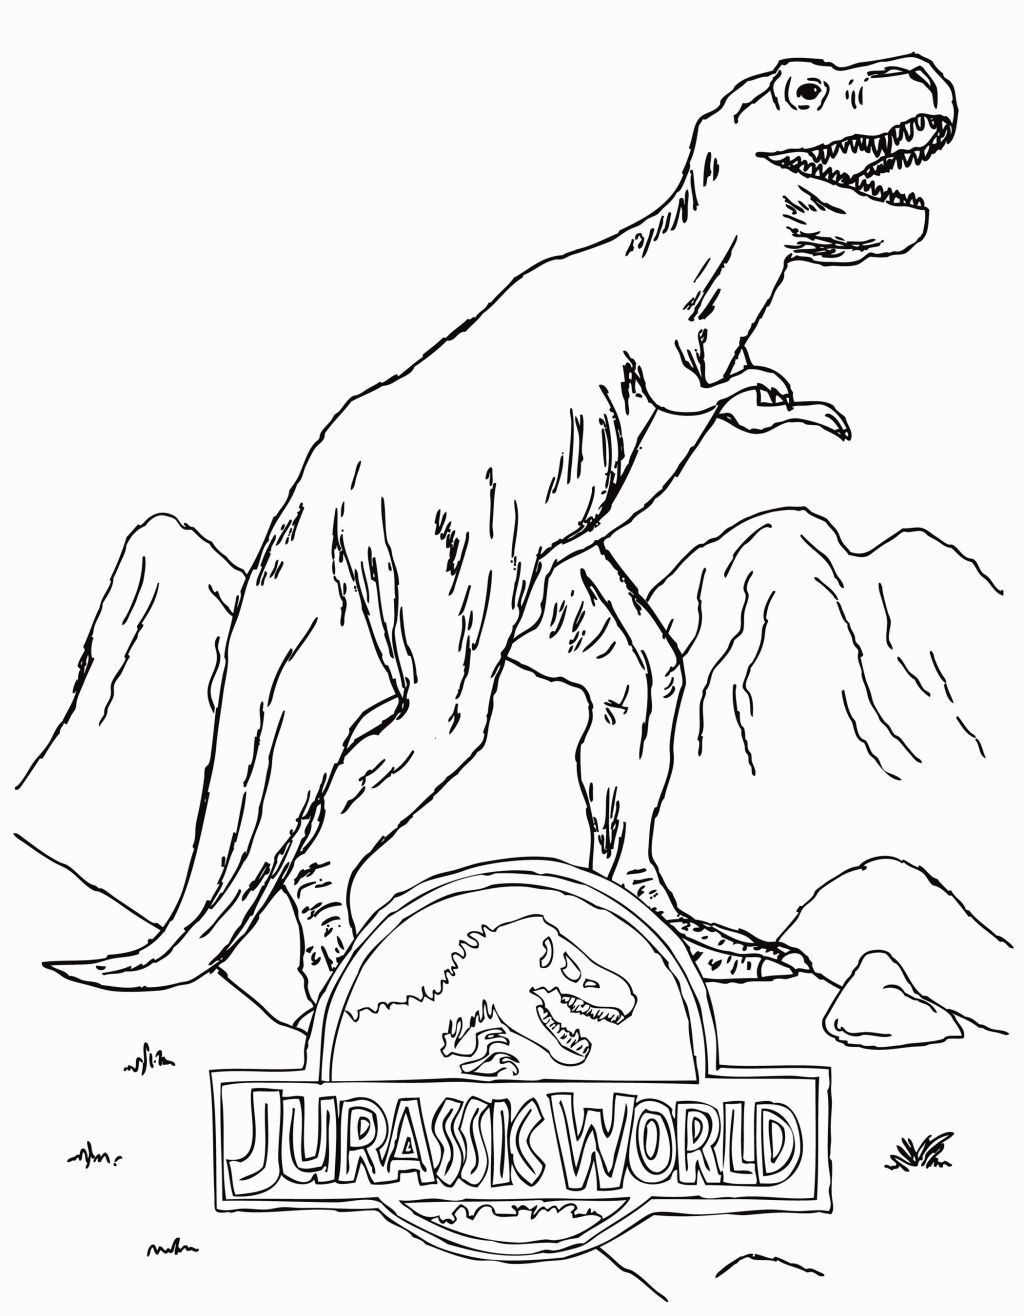 Jurassic World Coloring Sheets Coloring Pages Dinosaur Coloring Pages Free Coloring Pages